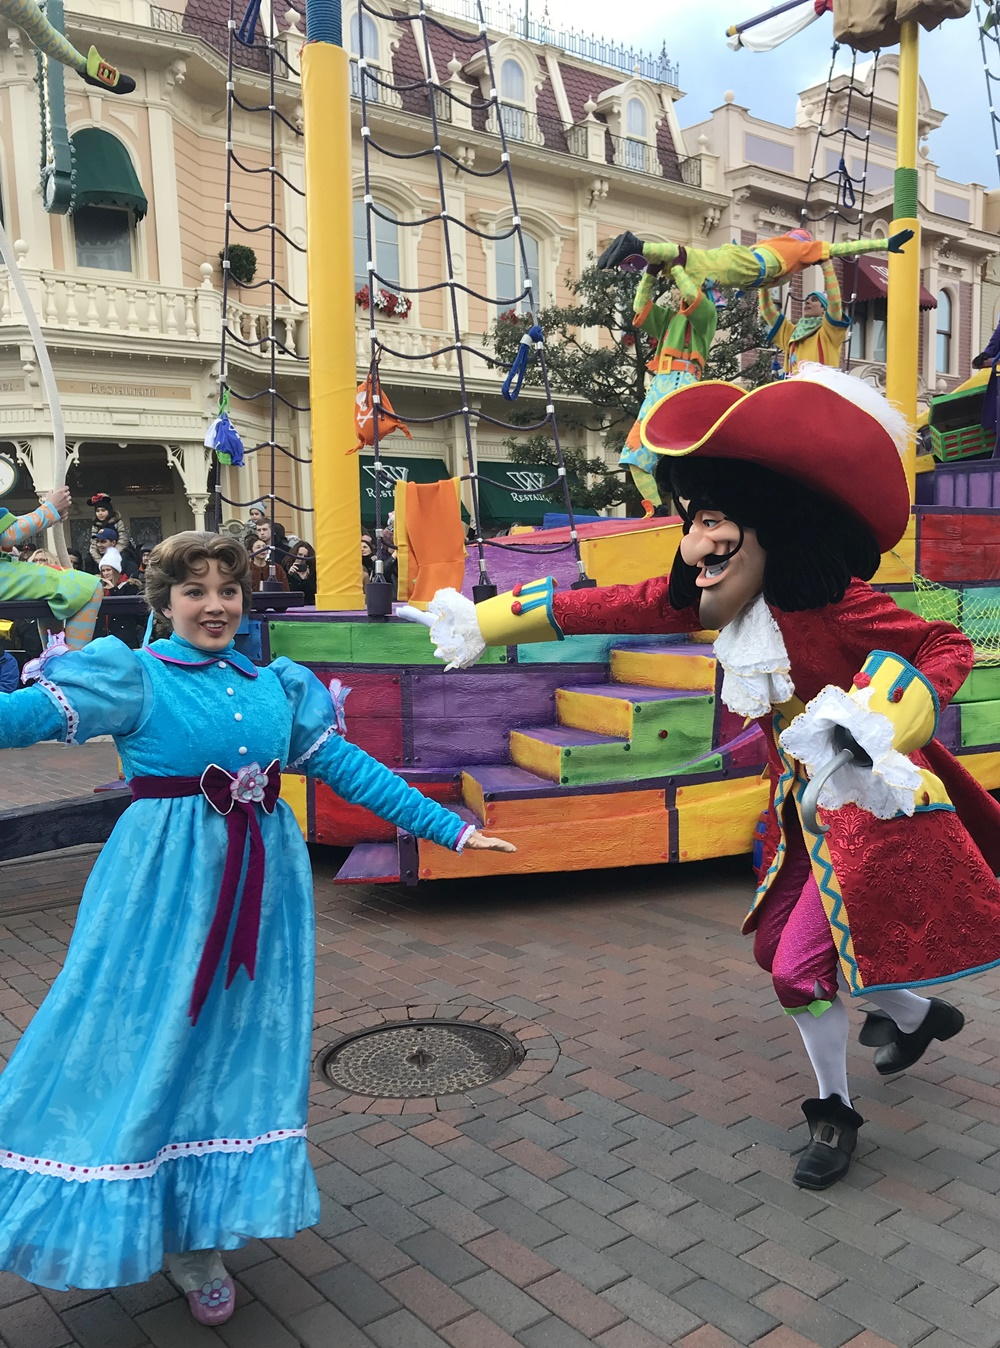 Saison Disney Disneyland Paris Pirates Princesses Festival